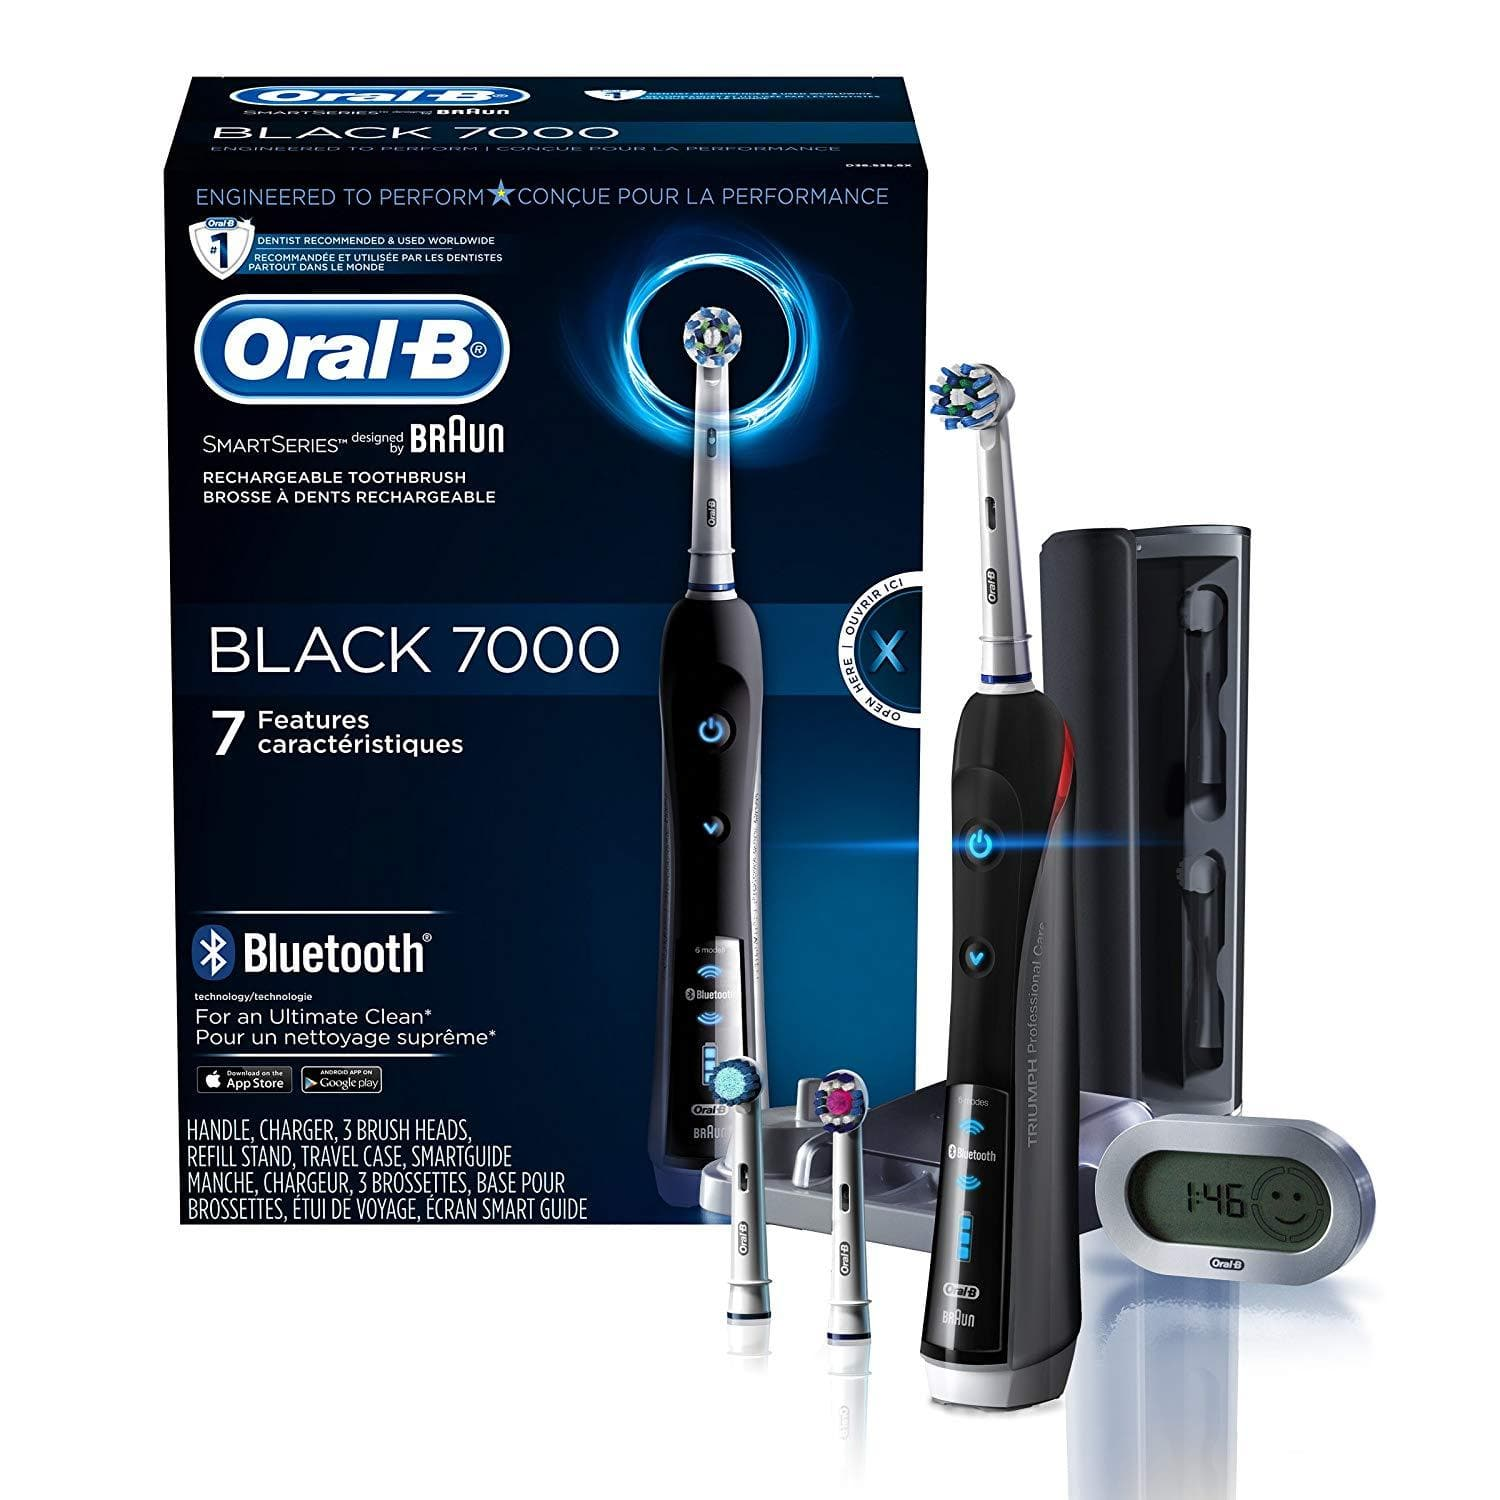 Oral-B - SmartSeries Pro 7000 Rechargeable Toothbrush with Bluetooth - Black - WiseTech Inc